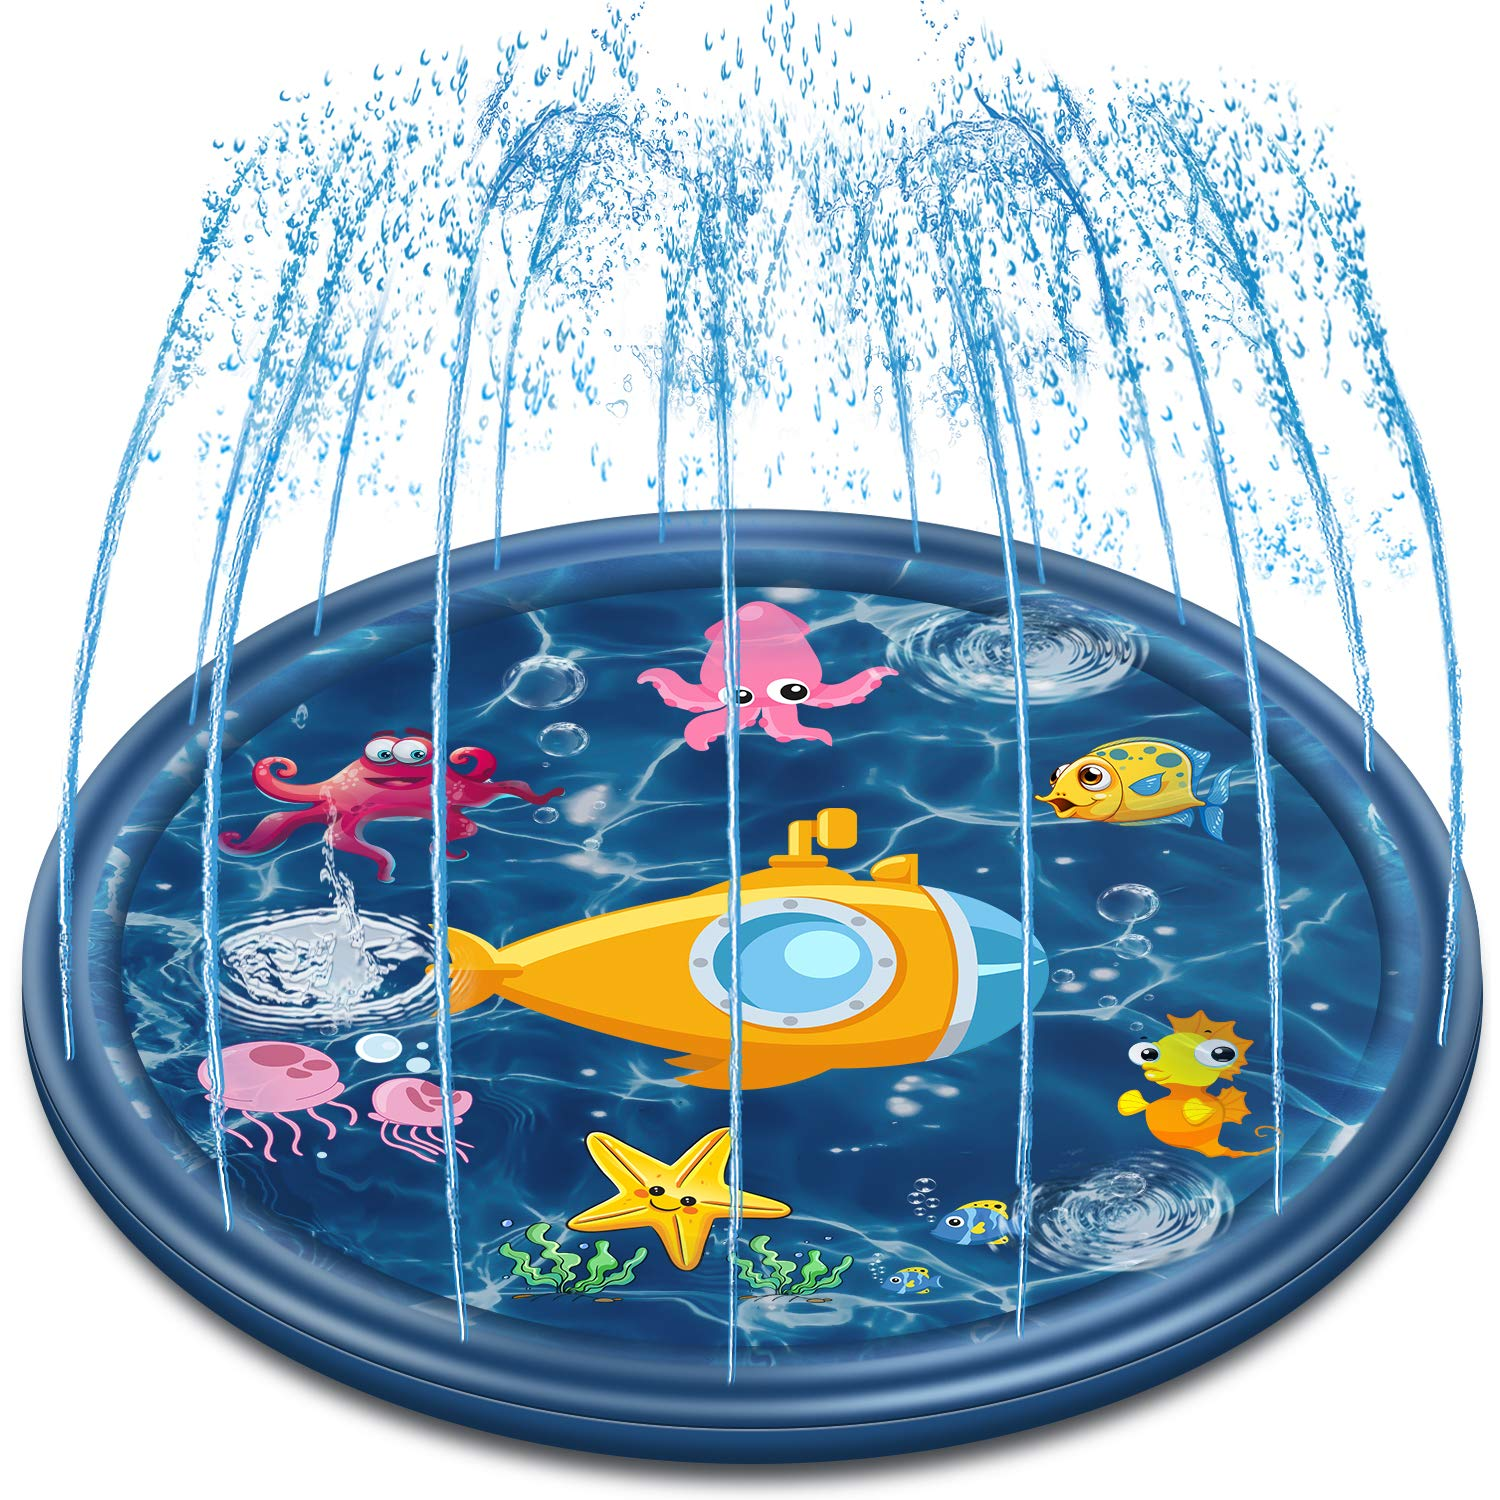 Neteast Outdoor Sprinkler Mat Summer Toys for Kids and Toddlers, 68'' Outside Splash Pad Water Toys for 1 2 3 4 5 6 7 8 Year Old Boys and Girls Baby